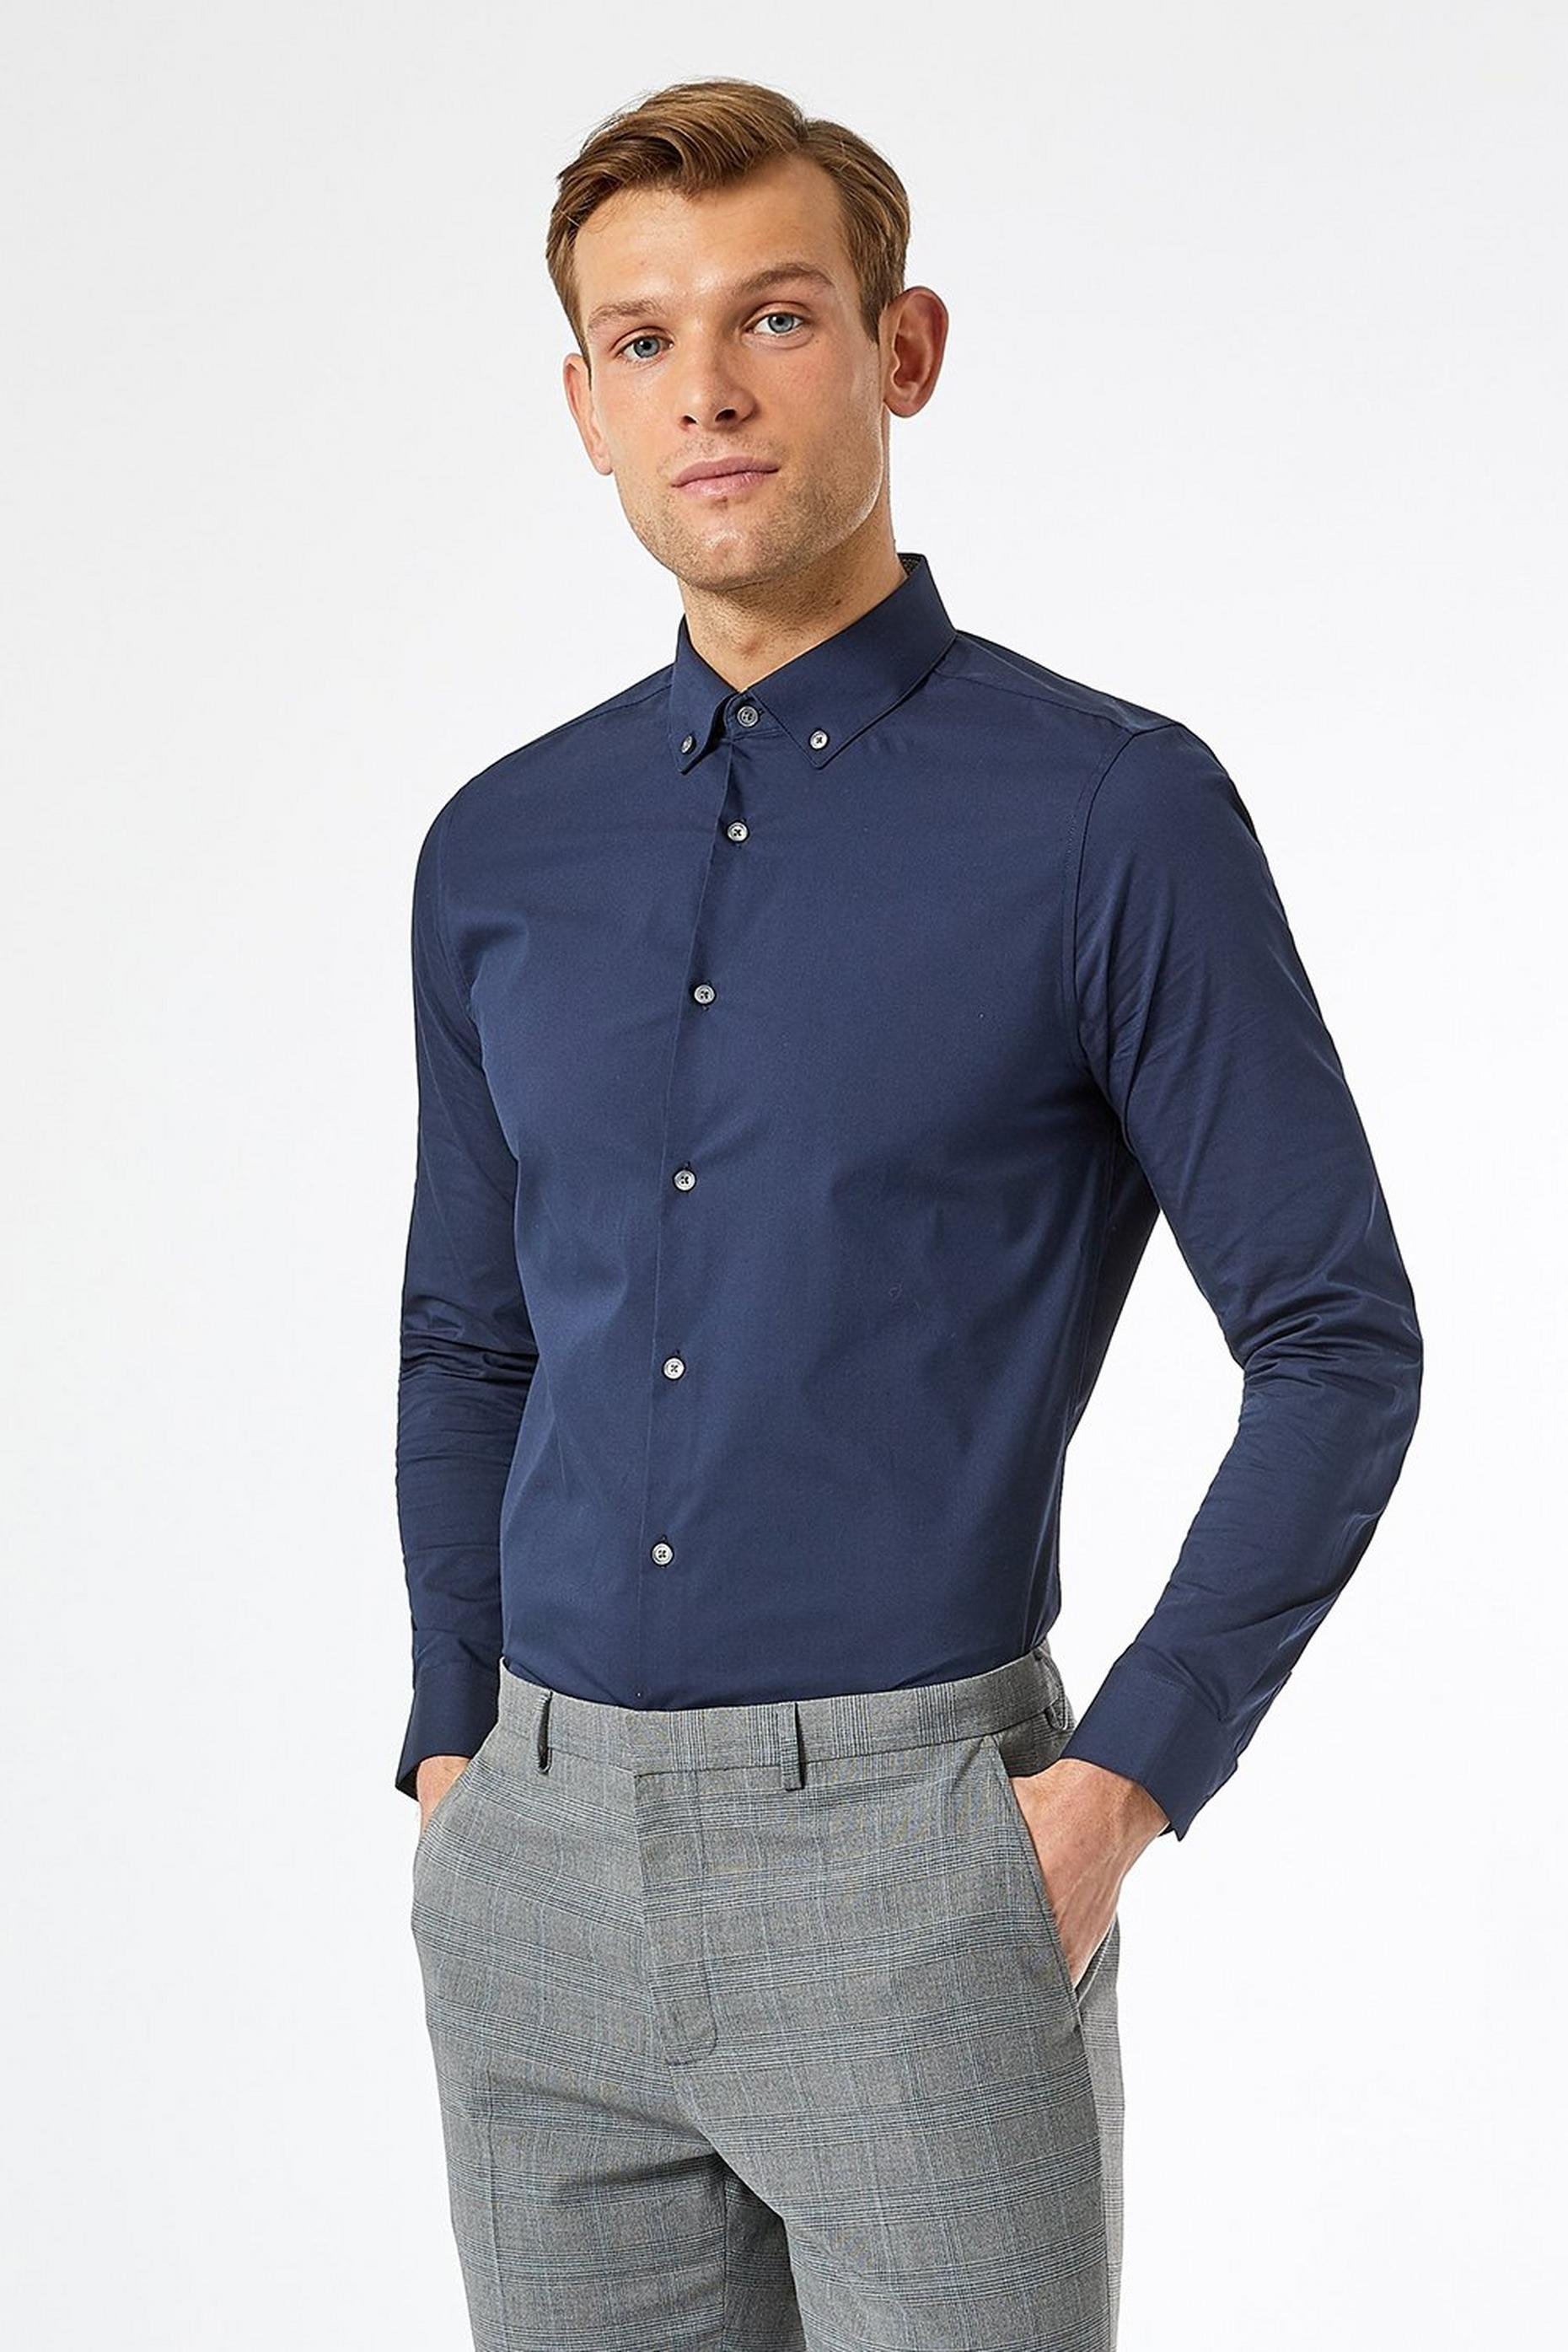 Navy Skinny Fit Button Down Stretch Shirt